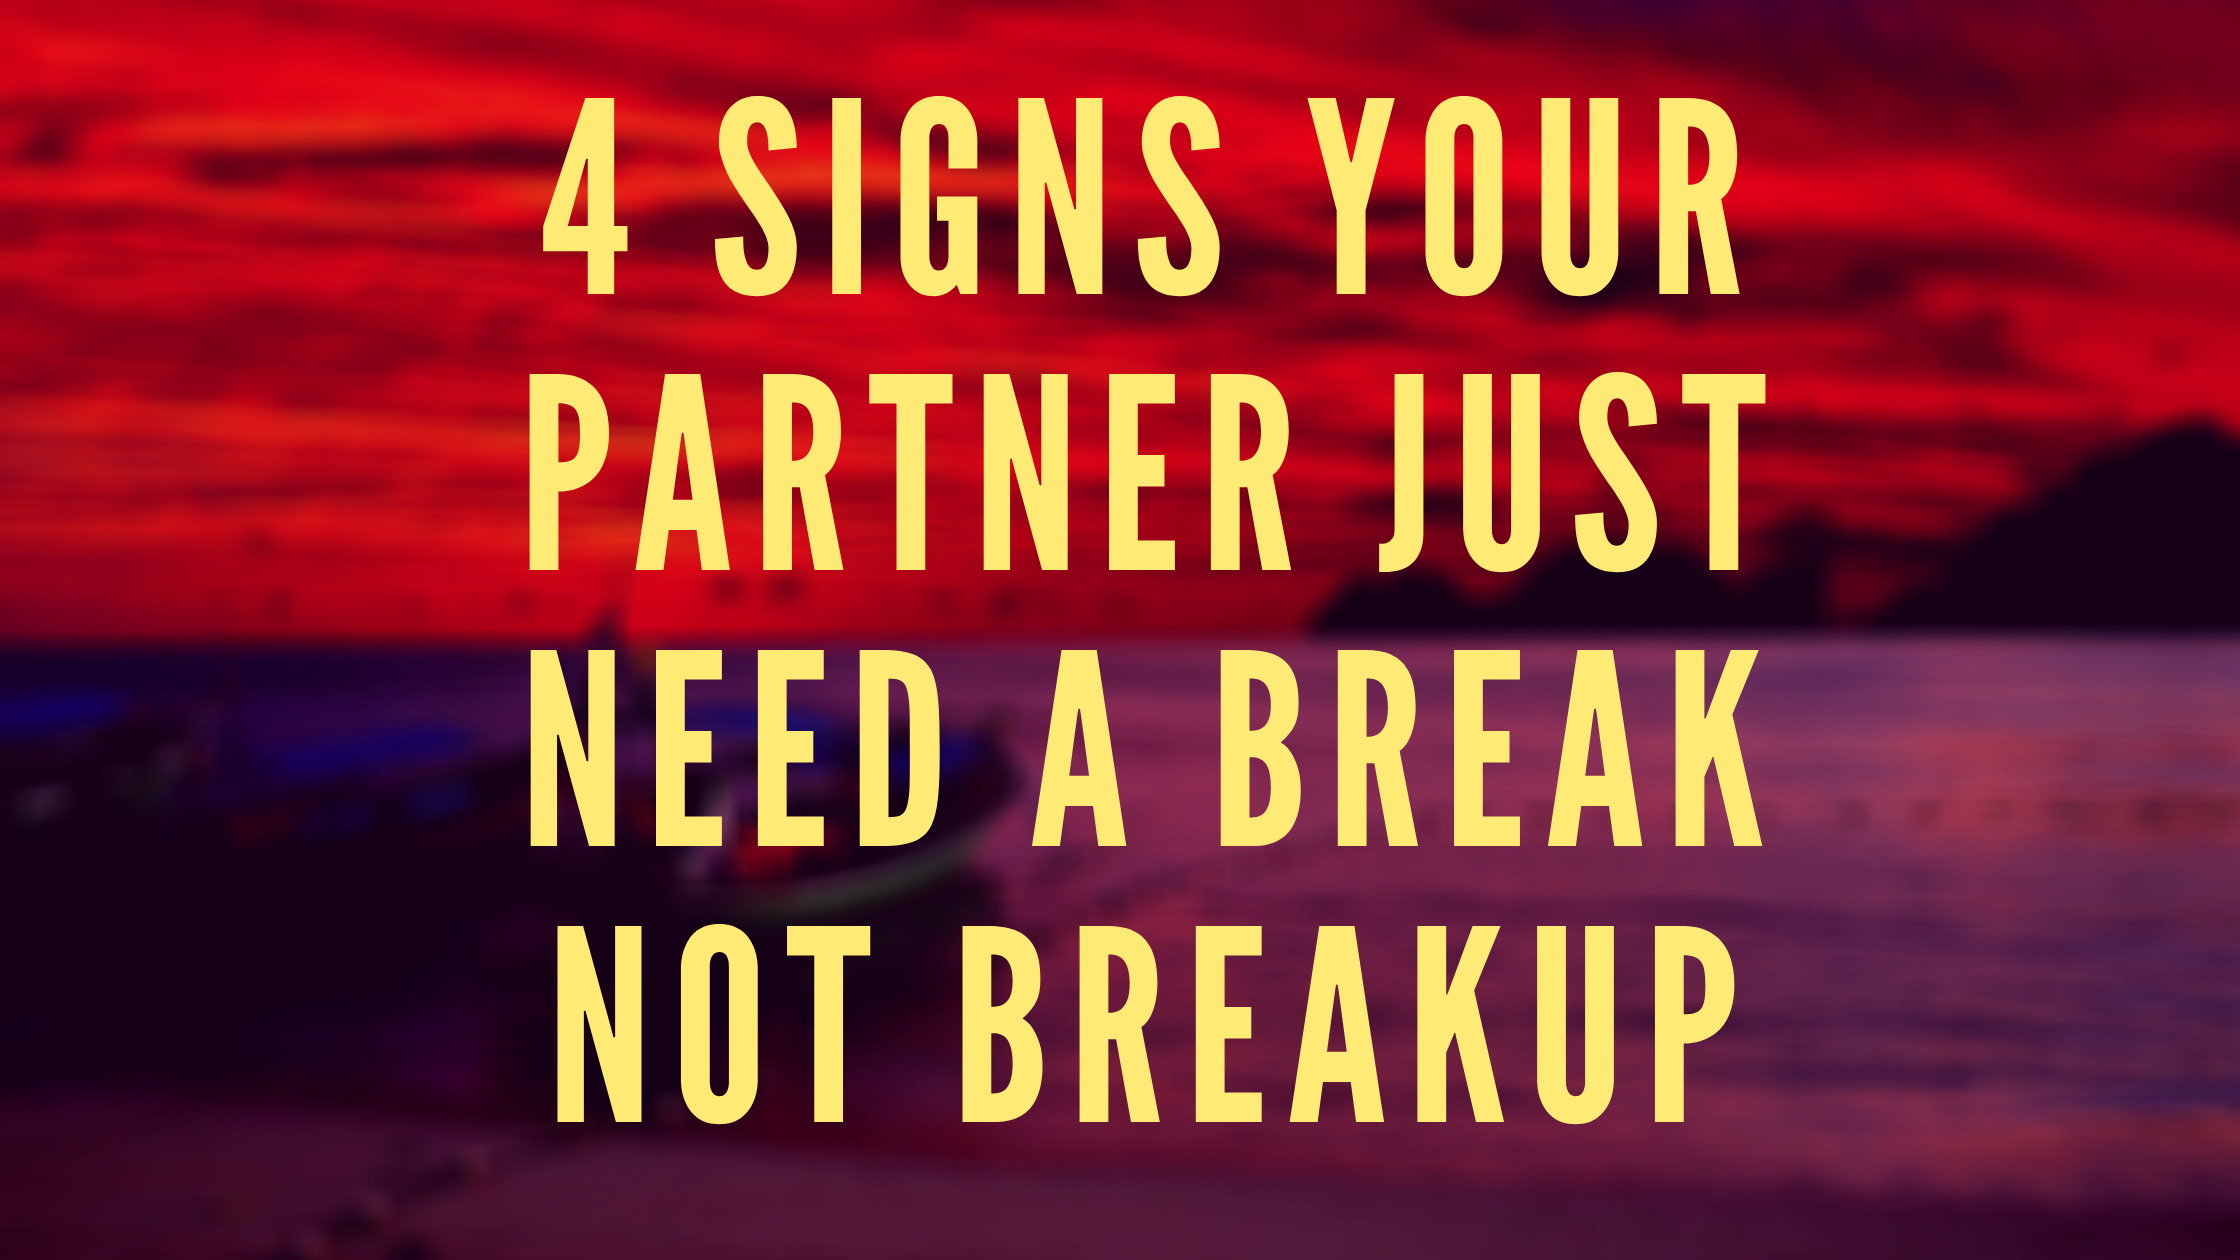 4 Signs Your Partner Just need A Break Not Breakup